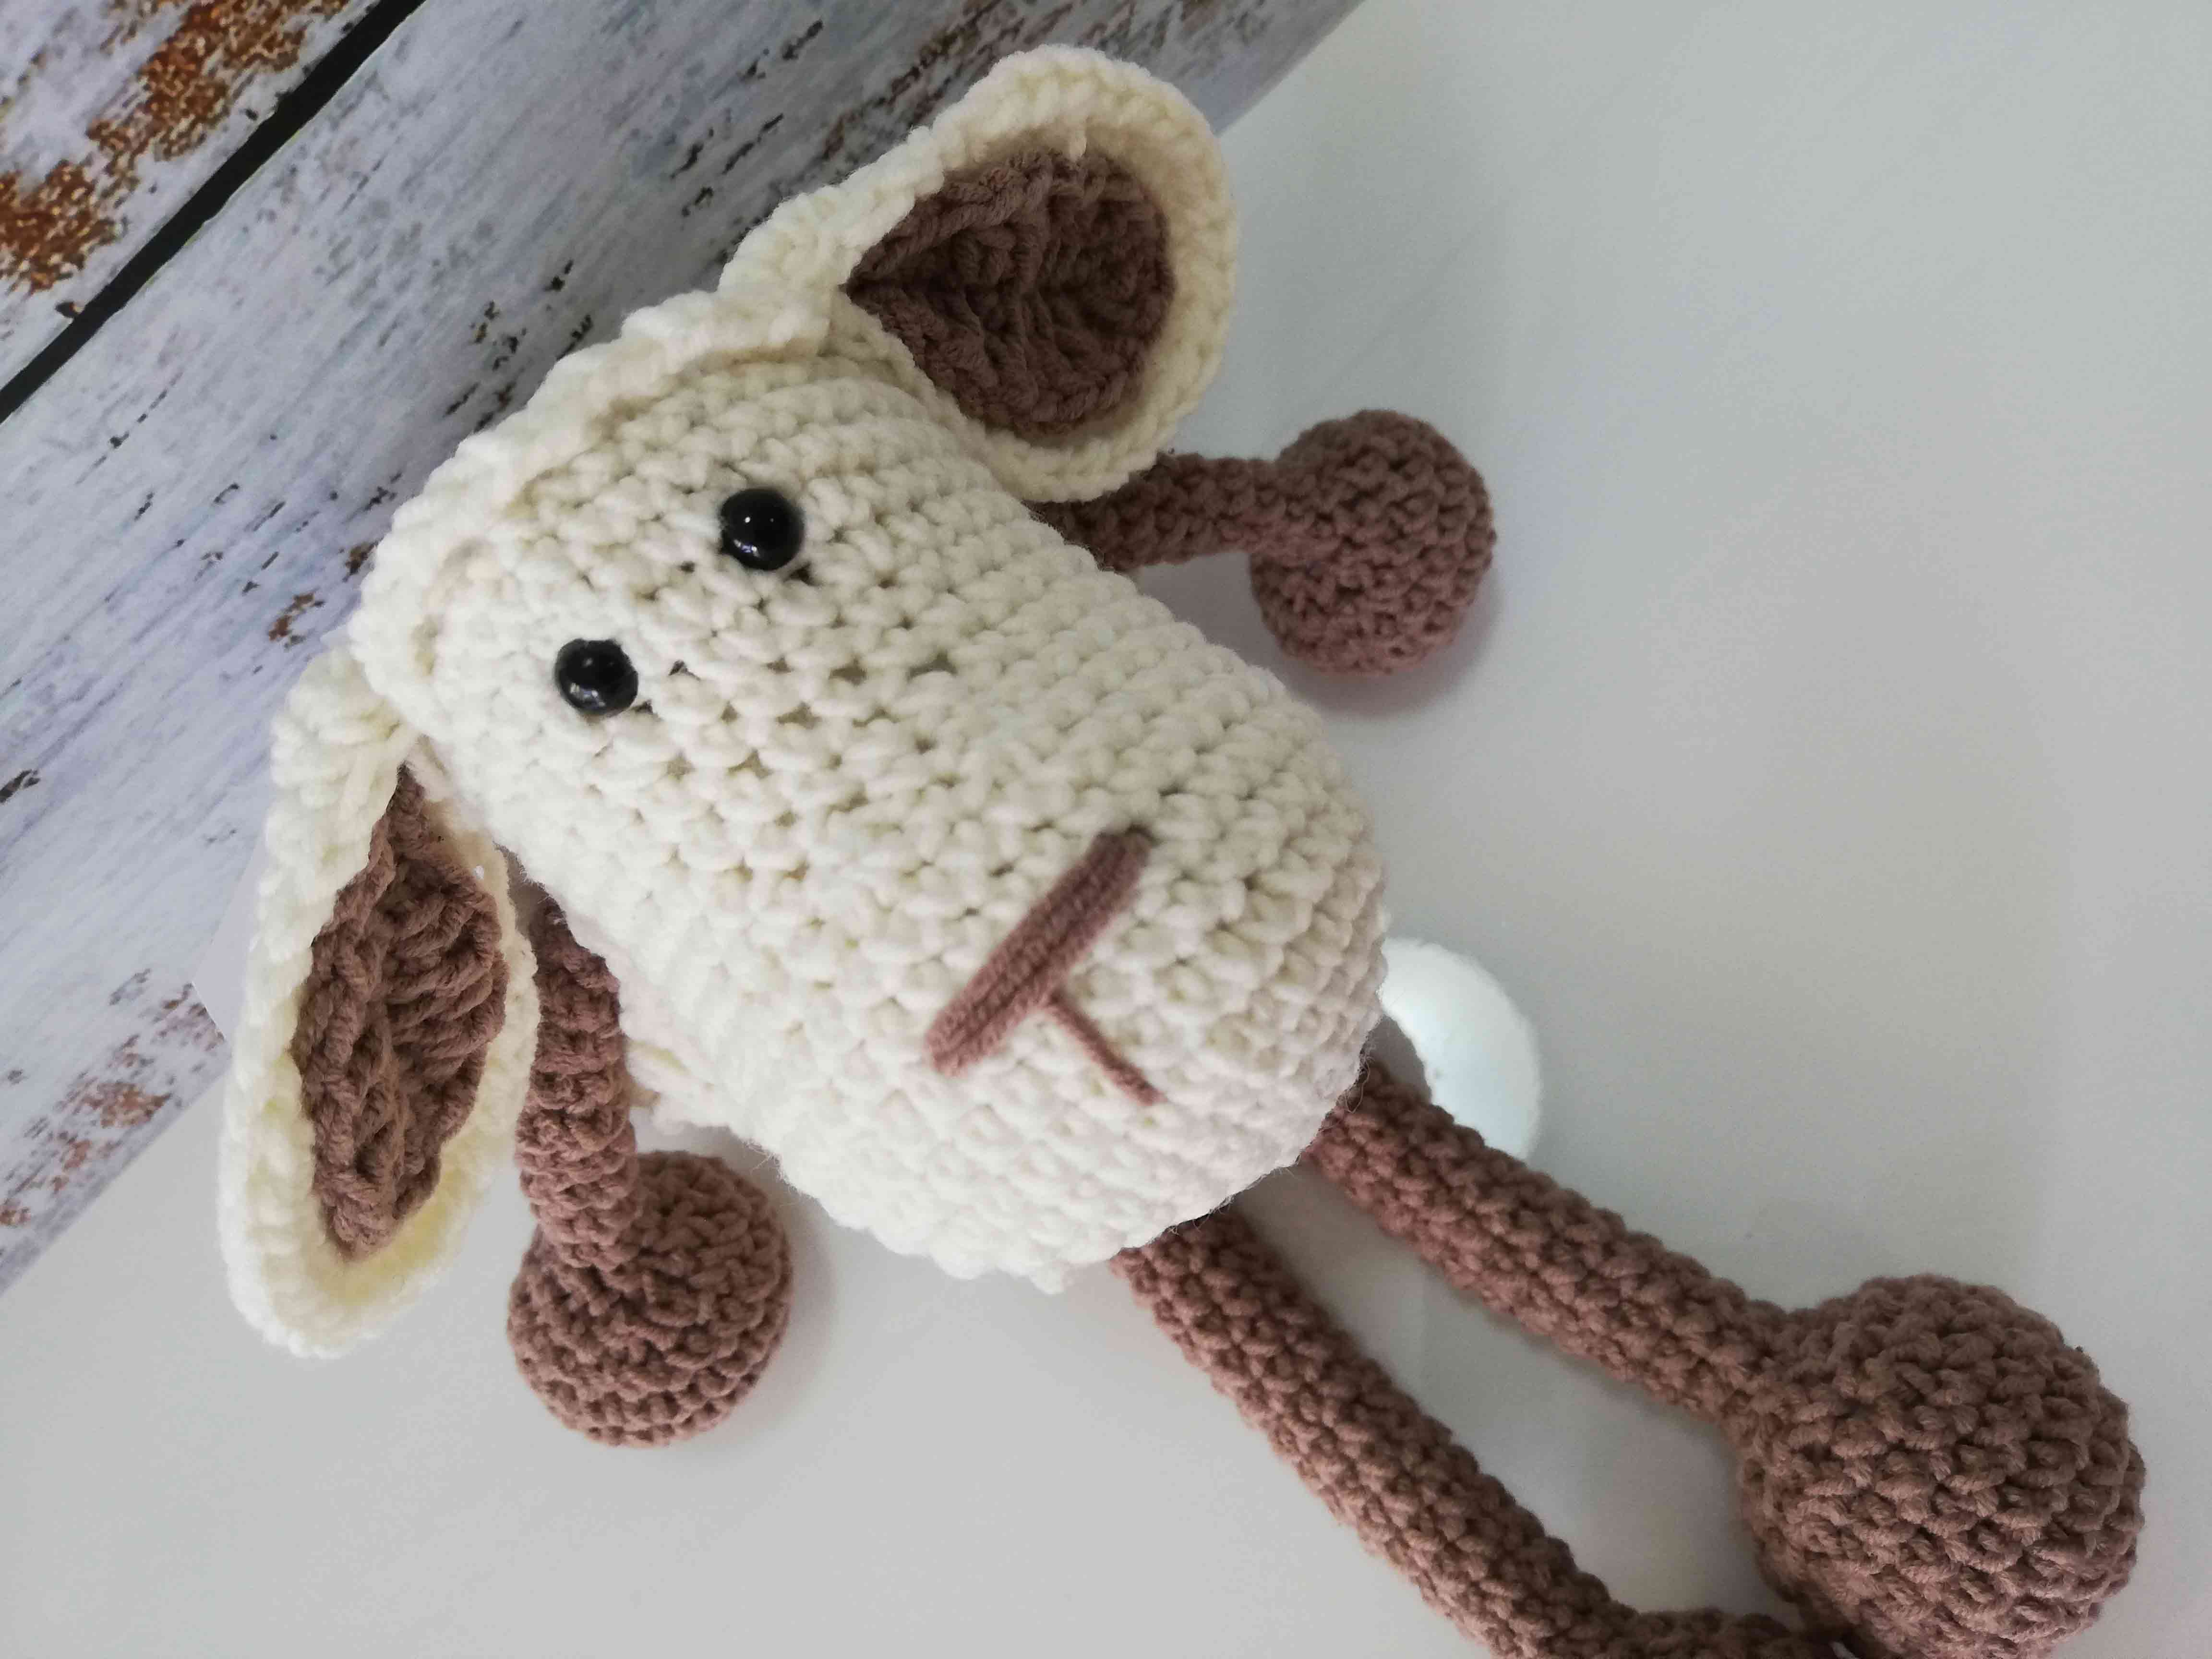 Pattern: MILKY THE LAMB Amigurumi Crochet Sheep Pattern | Etsy | 3456x4608